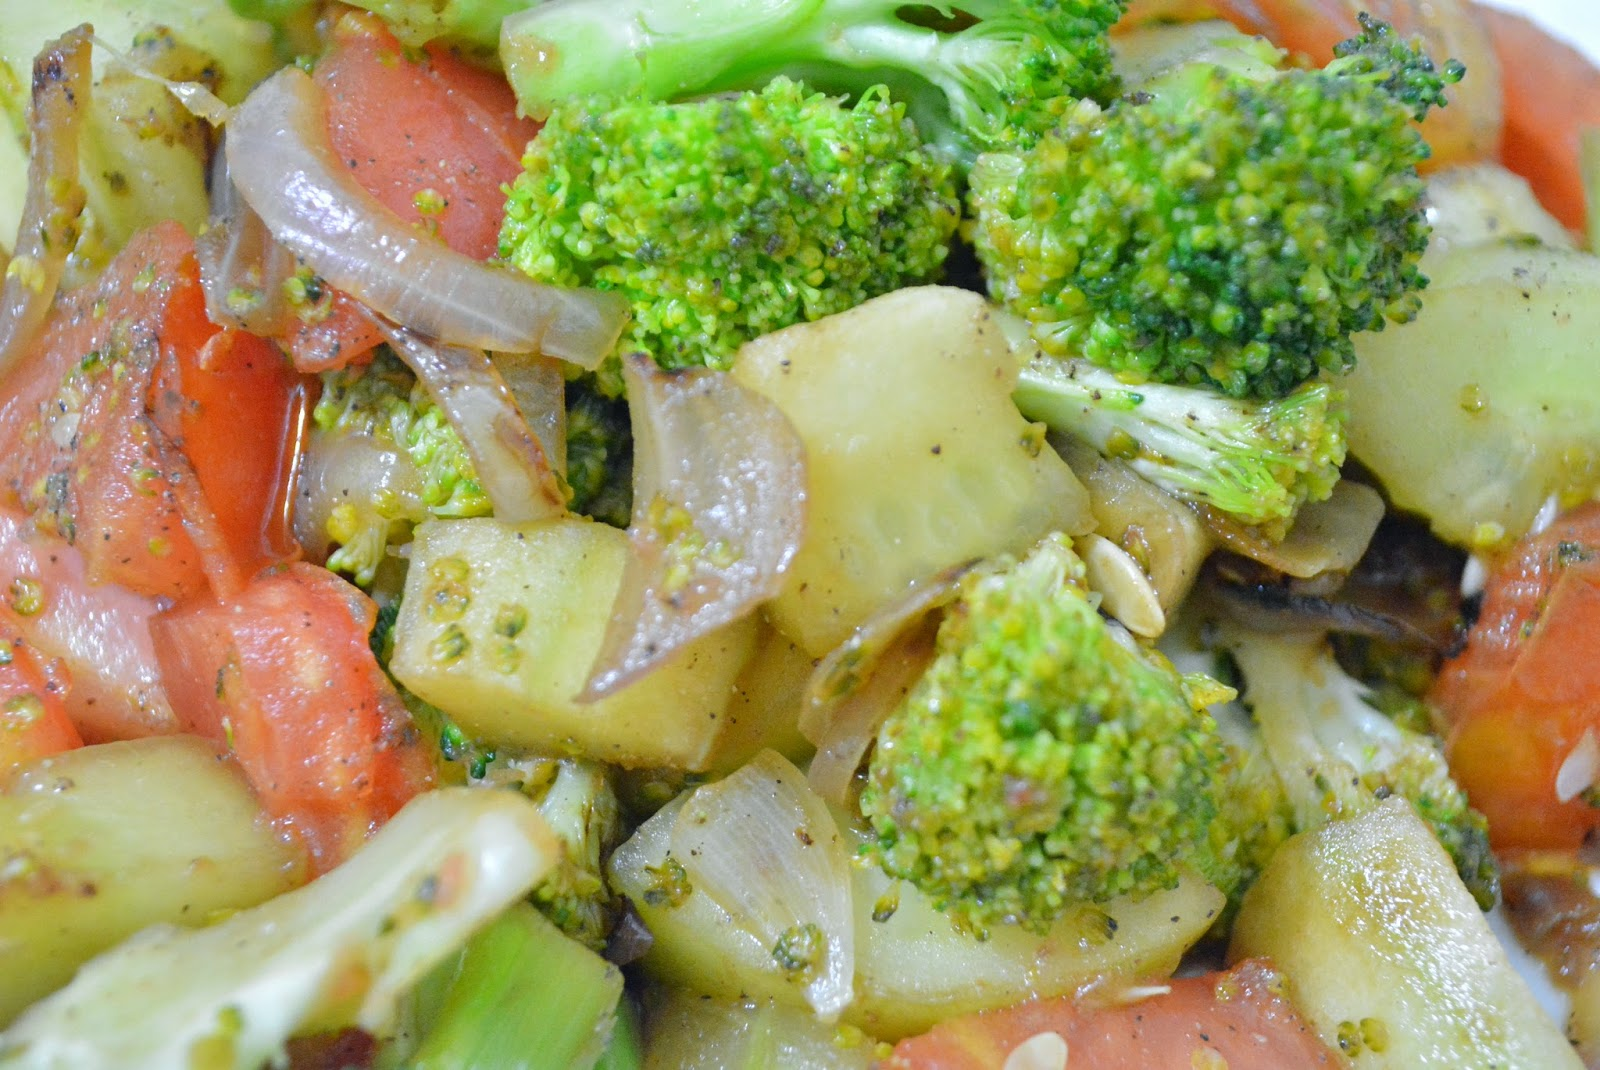 Broccoli salad with cucumber, tomato, onions, salt and pepper powder